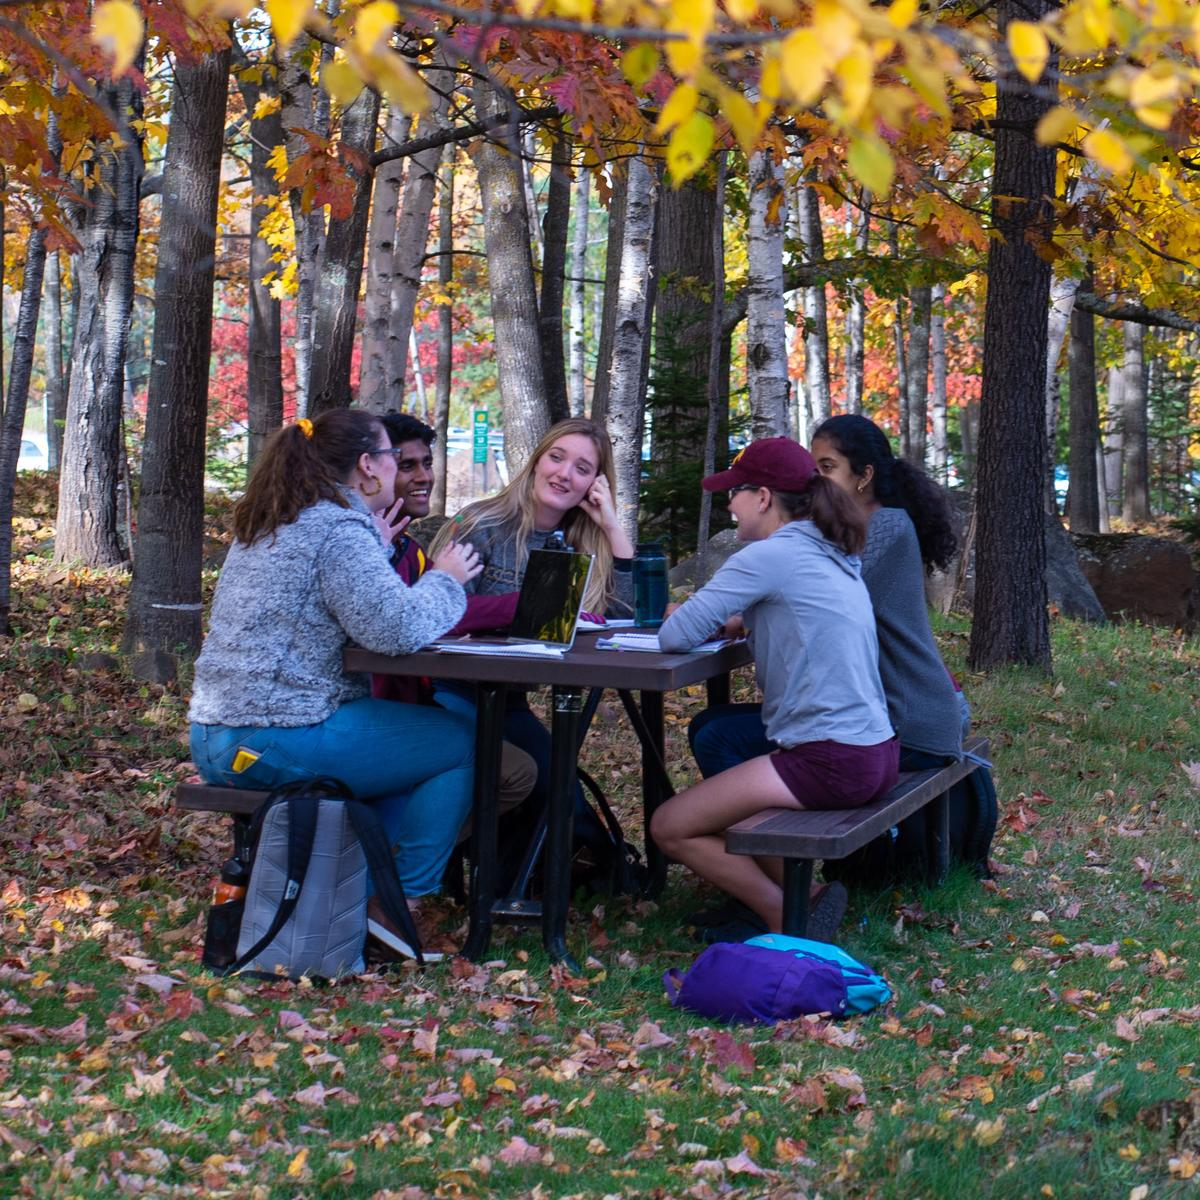 Students sitting outside at a table.